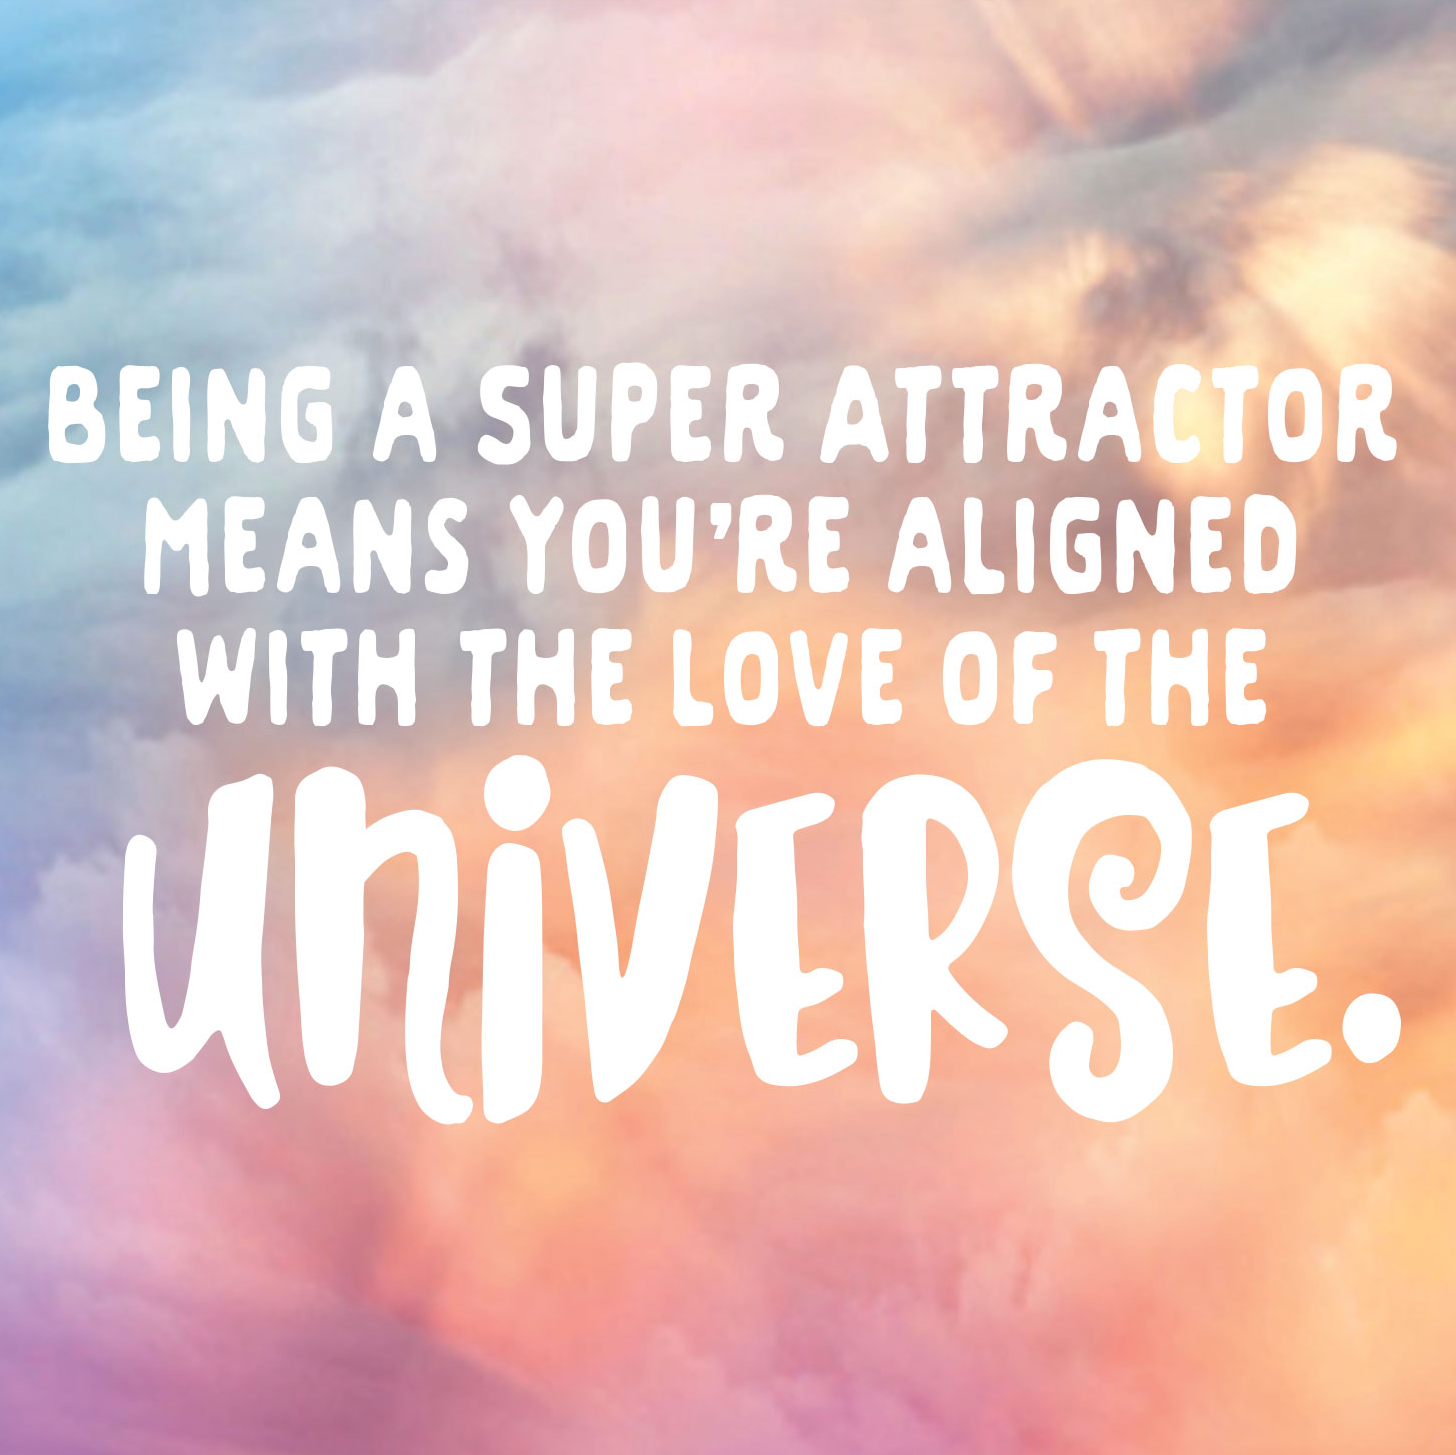 Being a Super Attractor means you're aligned with the love of the Universe